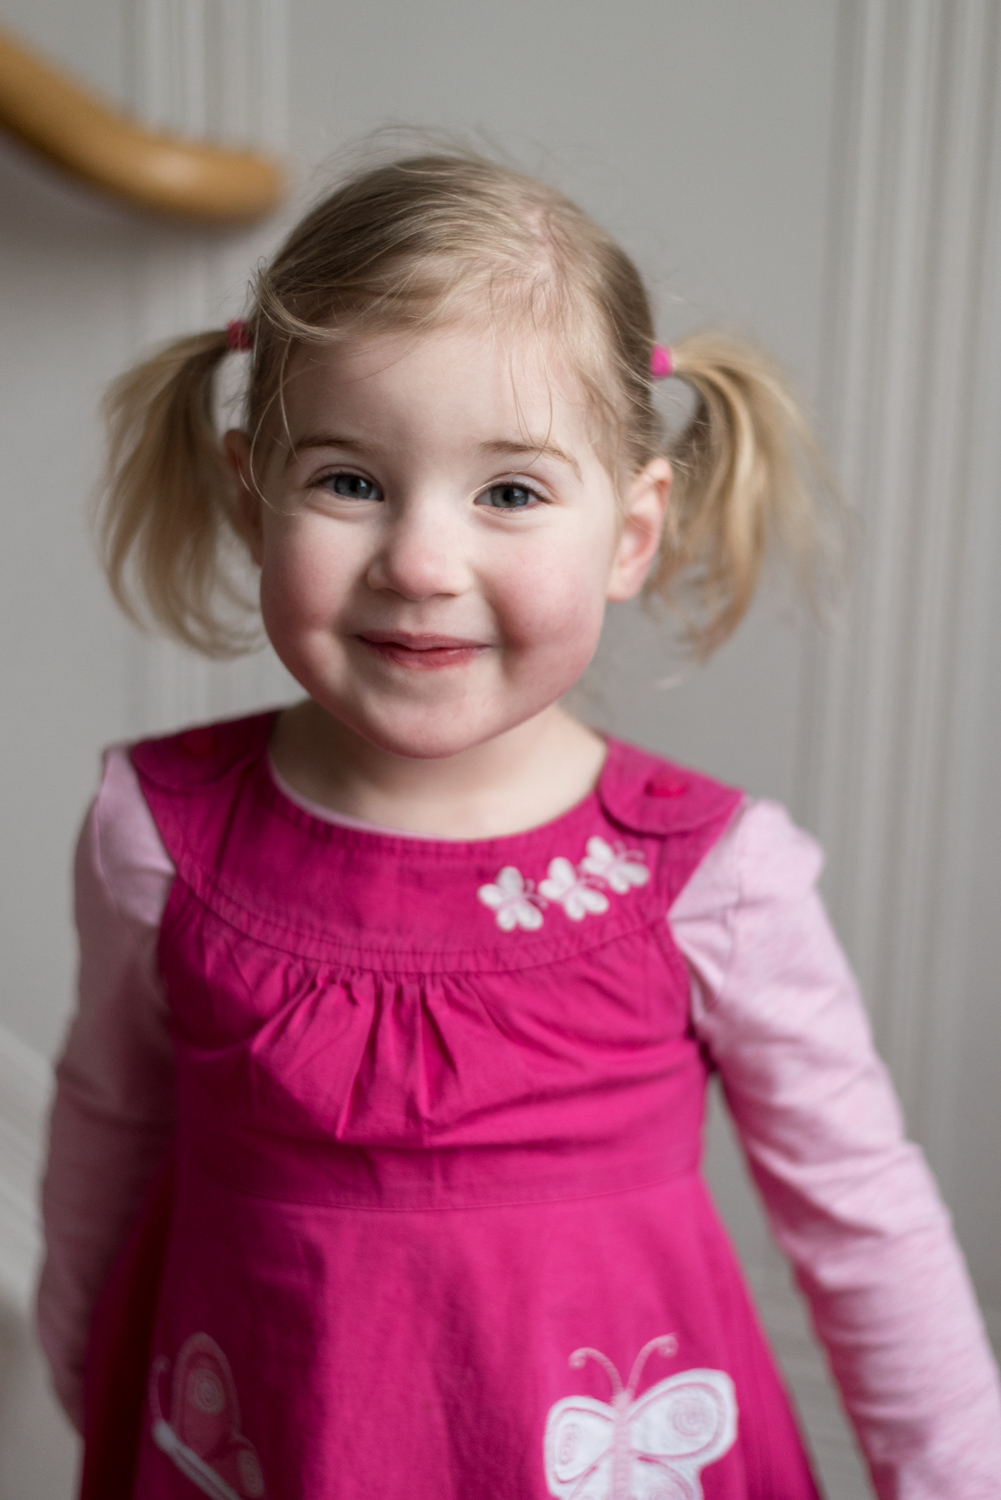 Family Photo Shoot In Dunfermline - childs portrait 02